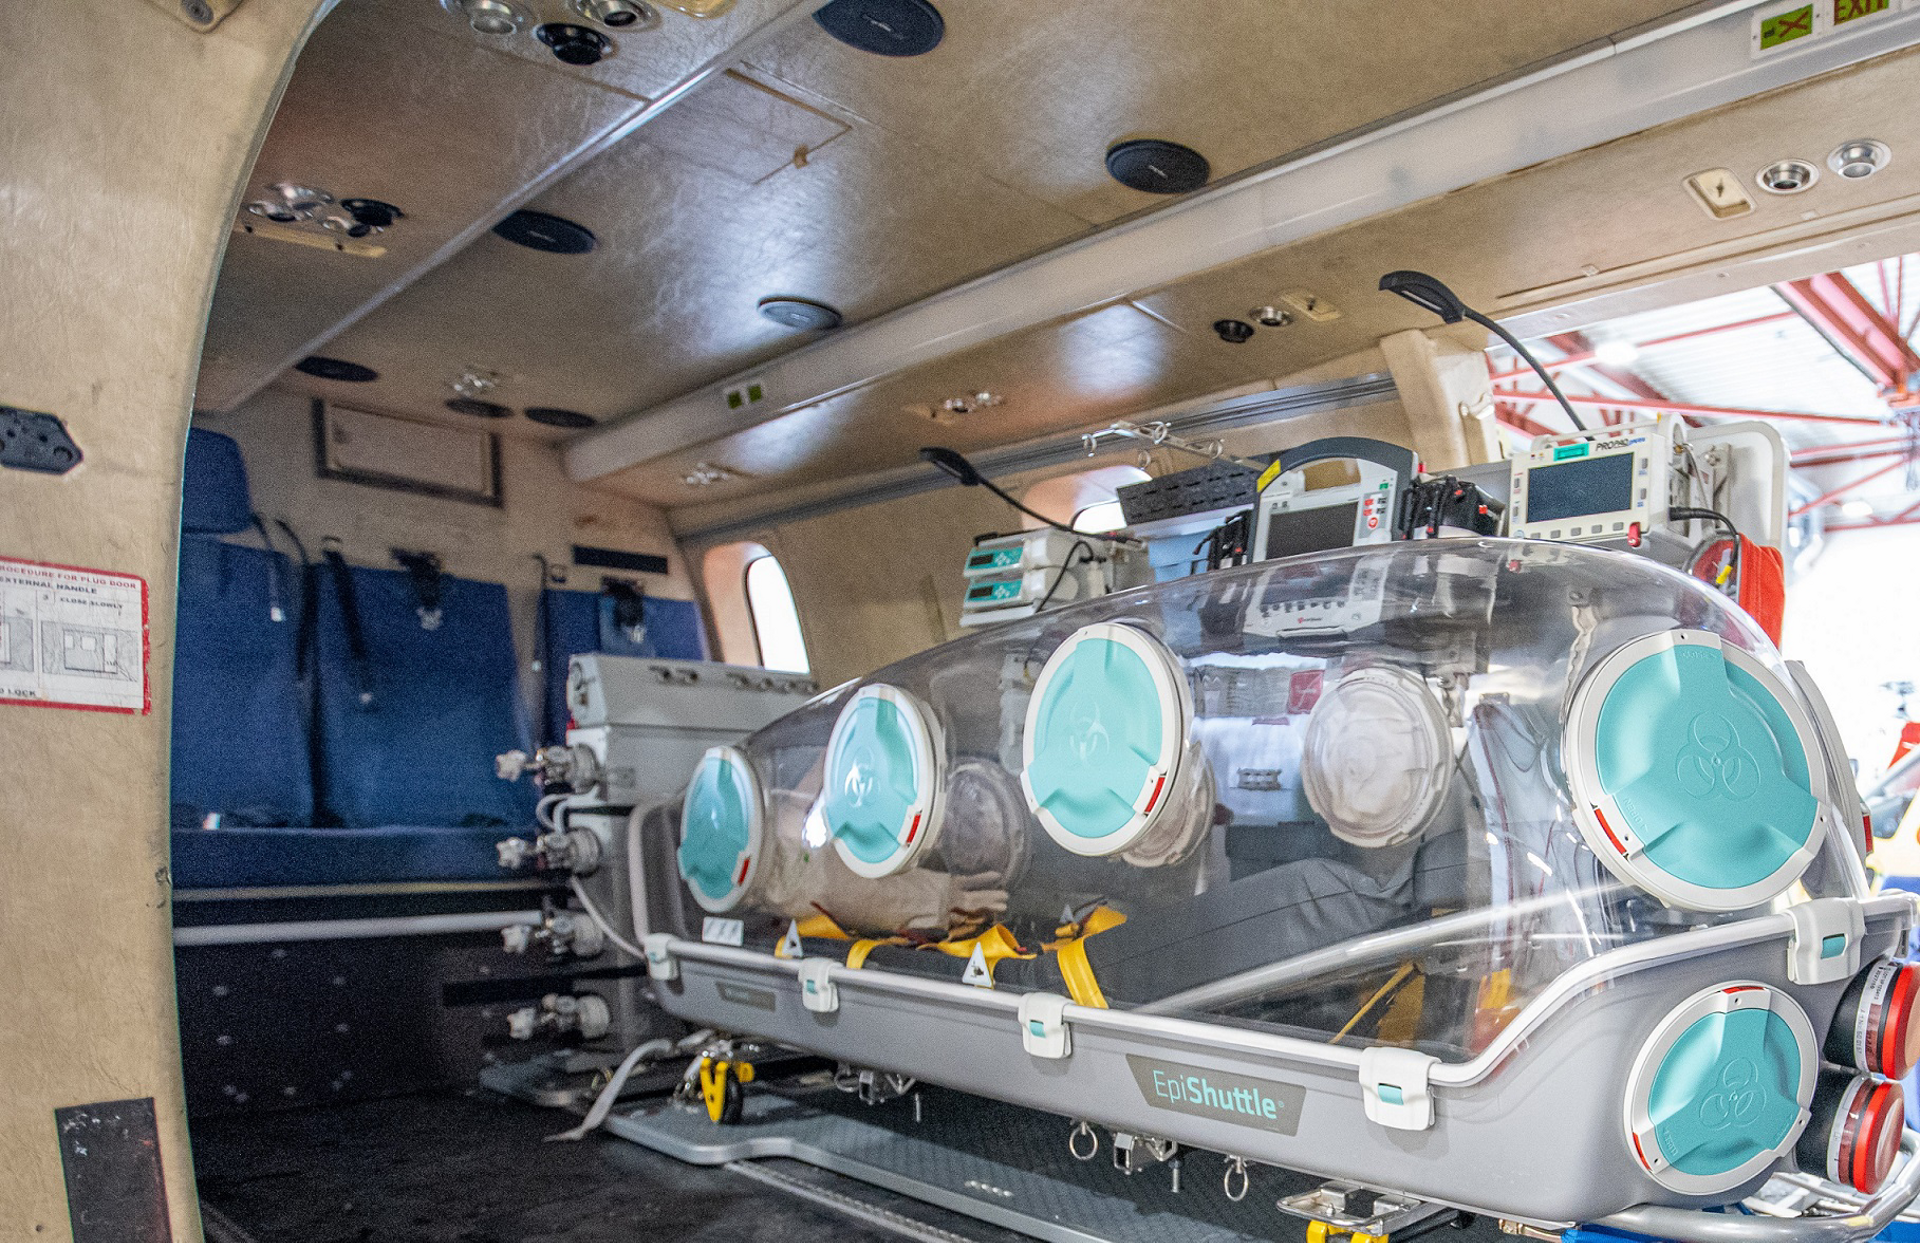 In Norway, Super Puma helicopter operator Lufttransport reacted fast to an urgent request from Norwegian Air Ambulance Services (Luftambulansetjenesten) with the rapid installation of the EpiShuttle to transport COVID-19 victims to hospital in the north of the country.